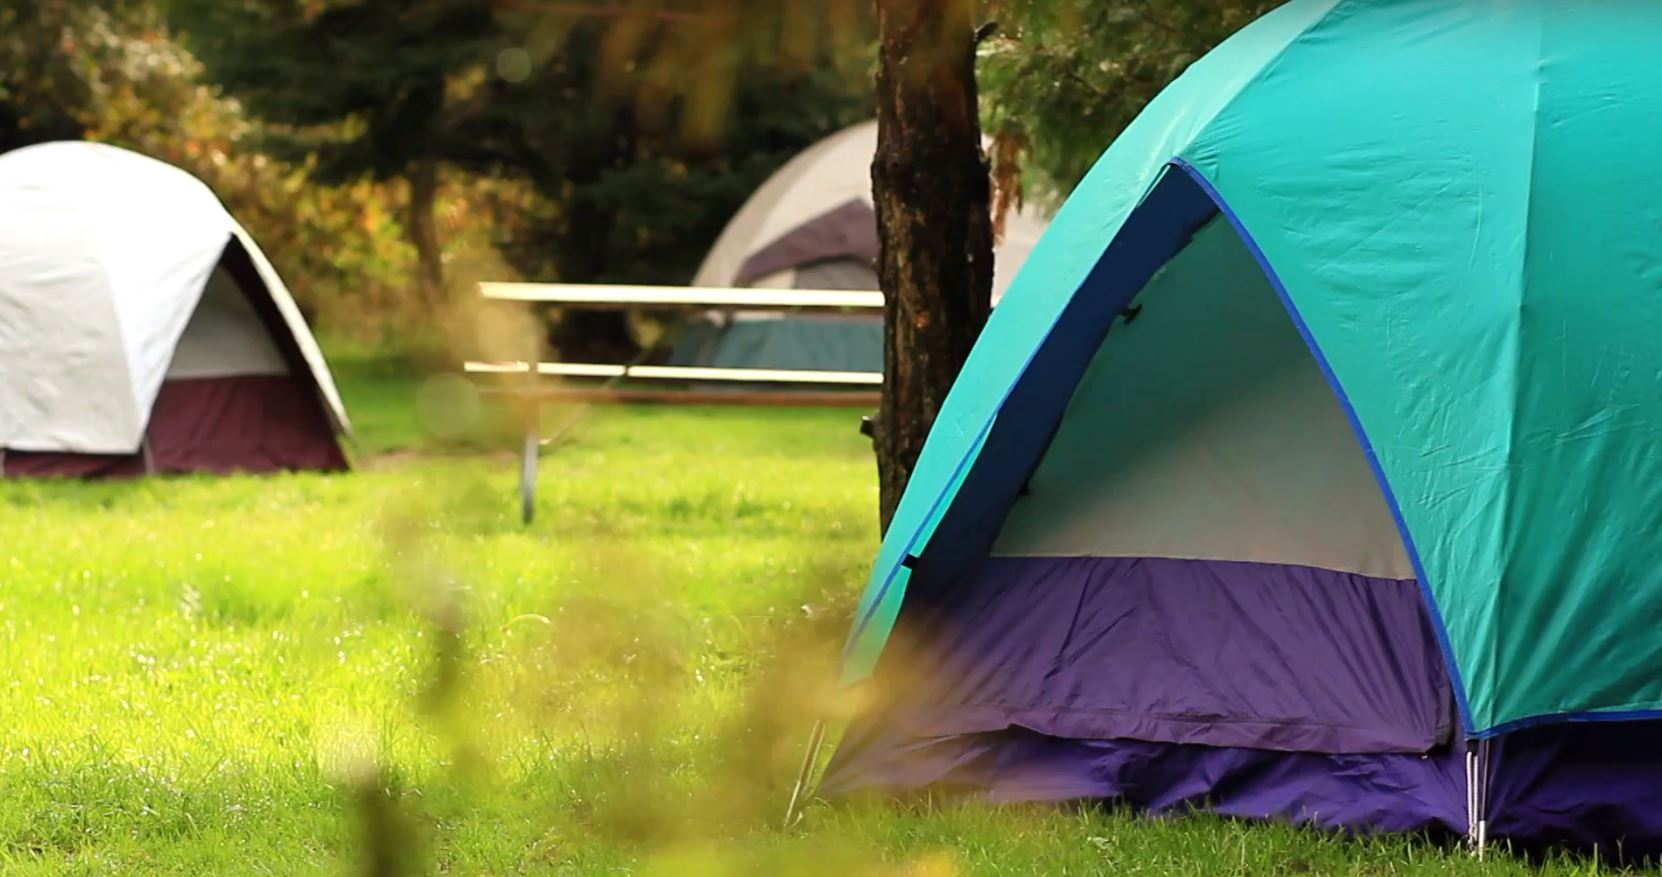 Tents at albion hills campground